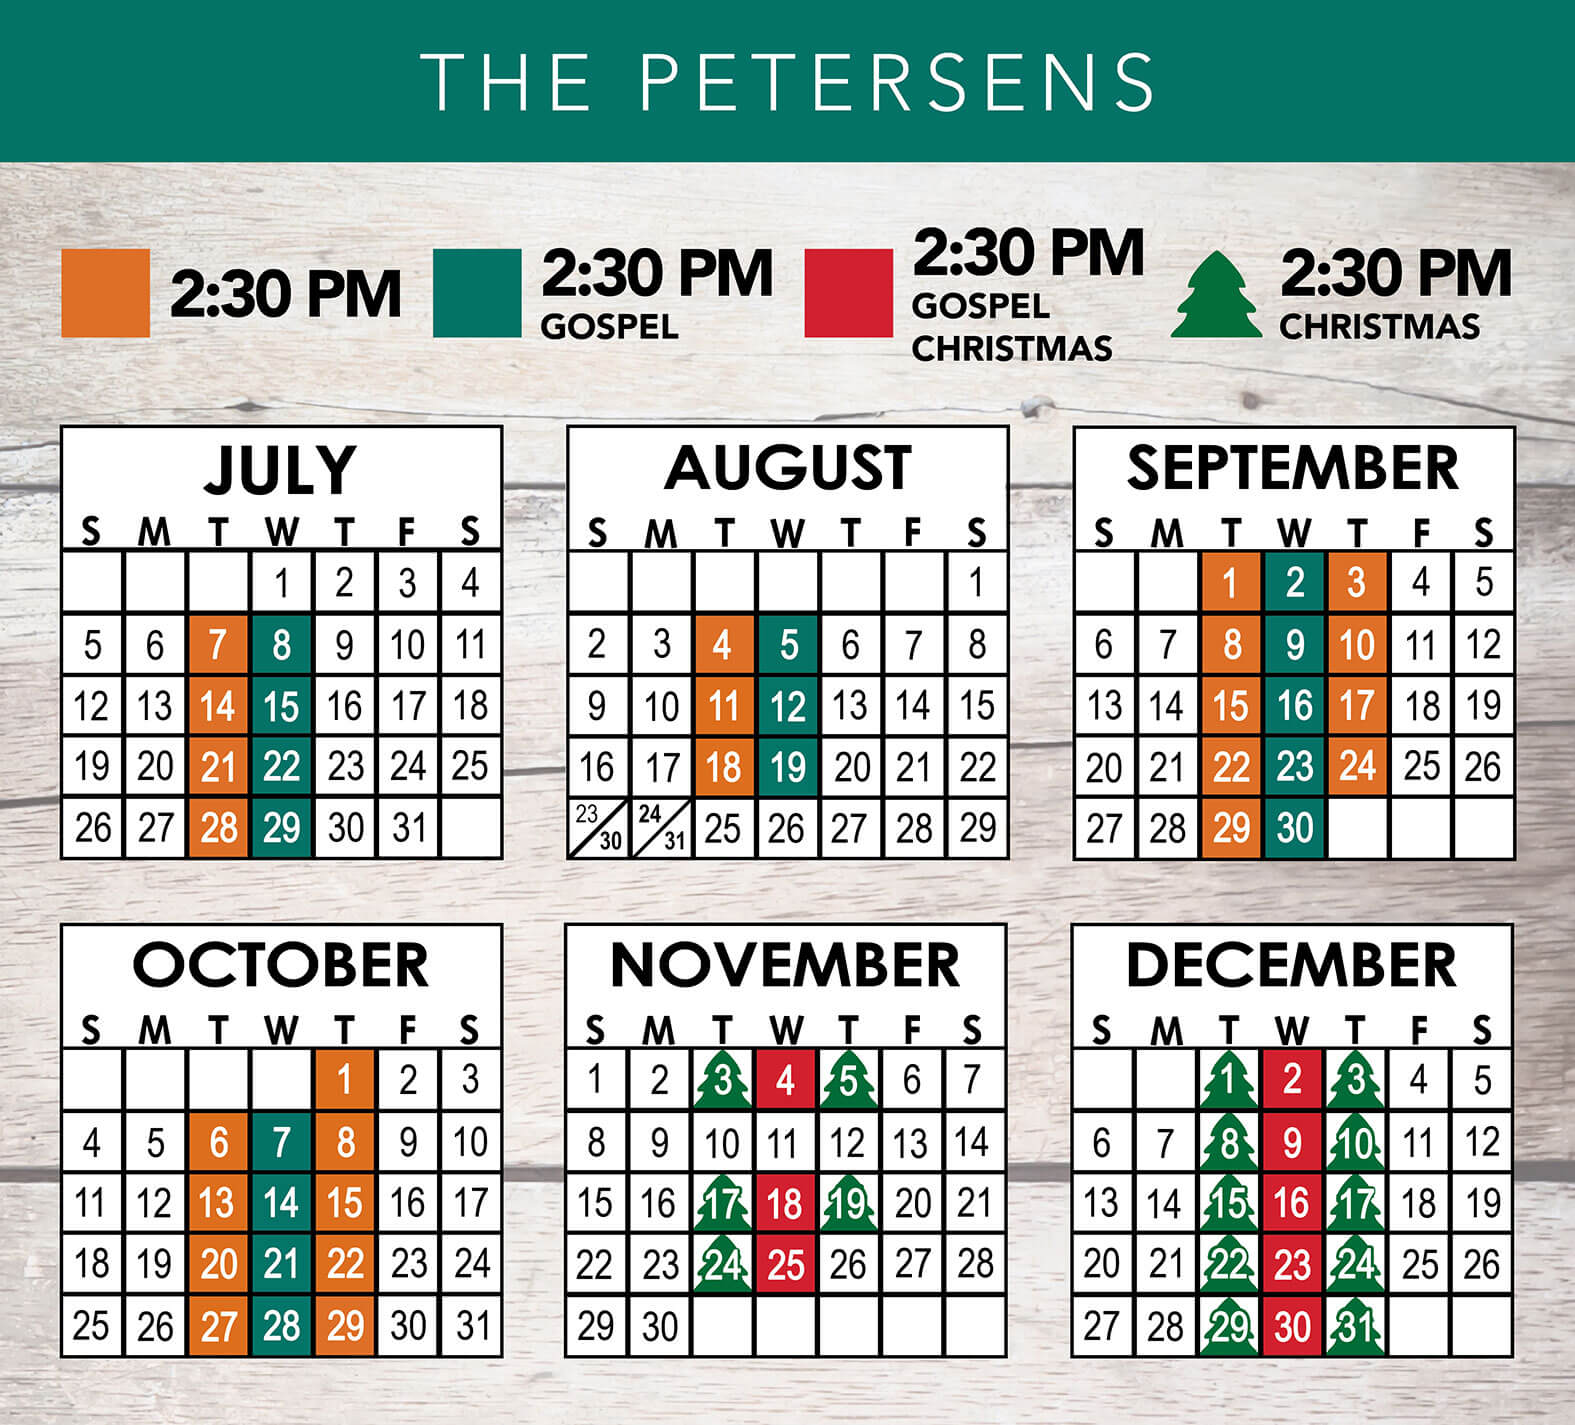 The Petersens 2020 Schedule